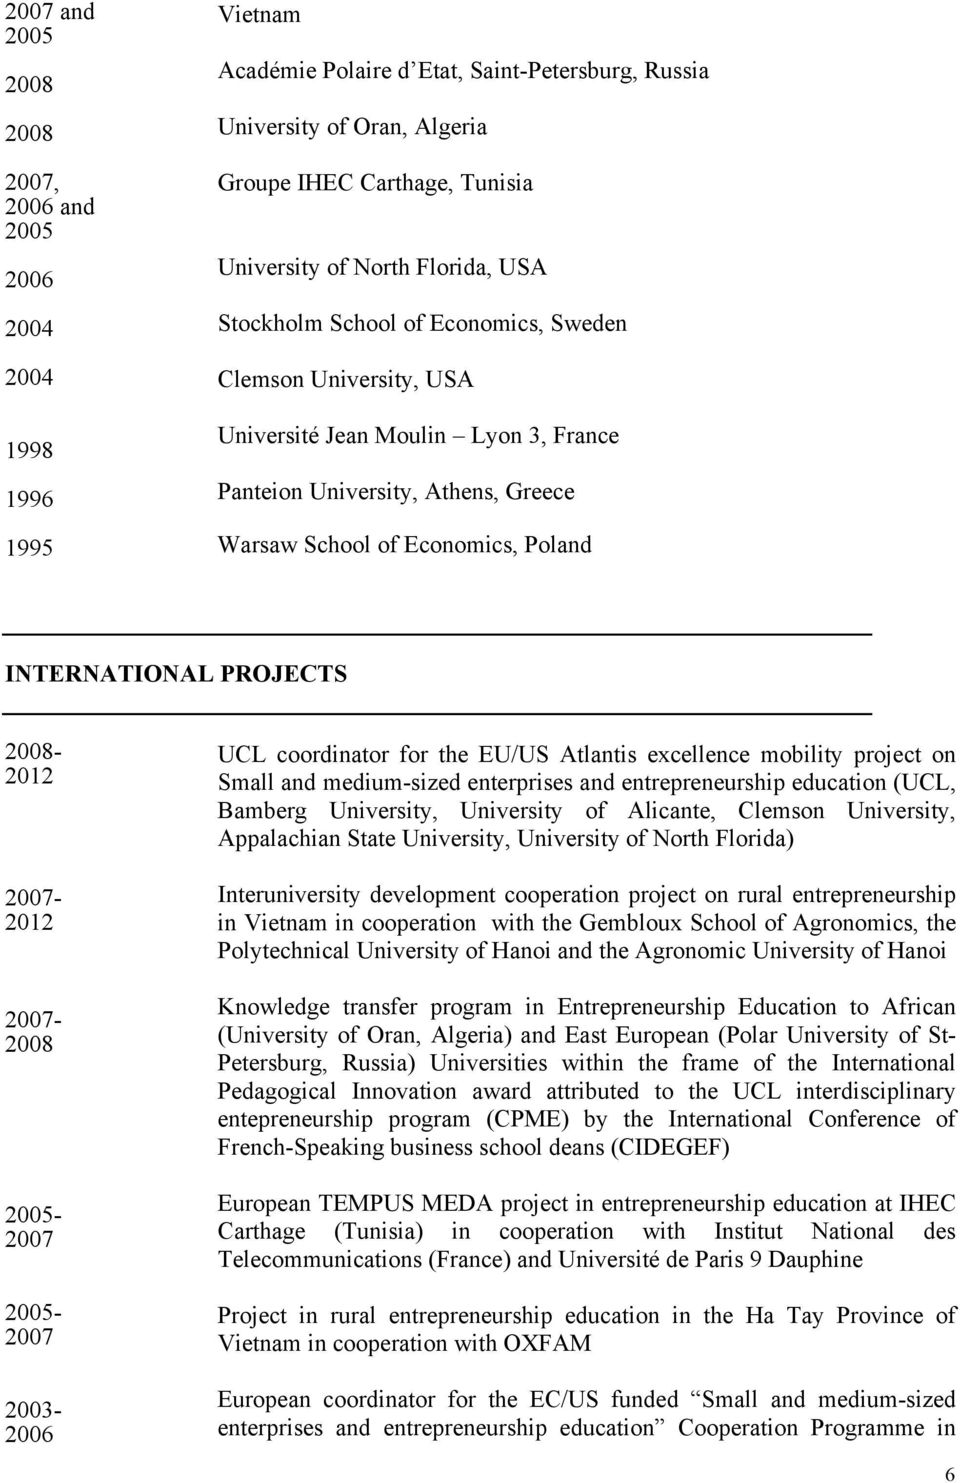 2007-2007- 2005-2007 2005-2007 2003- UCL coordinator for the EU/US Atlantis excellence mobility project on Small and medium-sized enterprises and entrepreneurship education (UCL, Bamberg University,